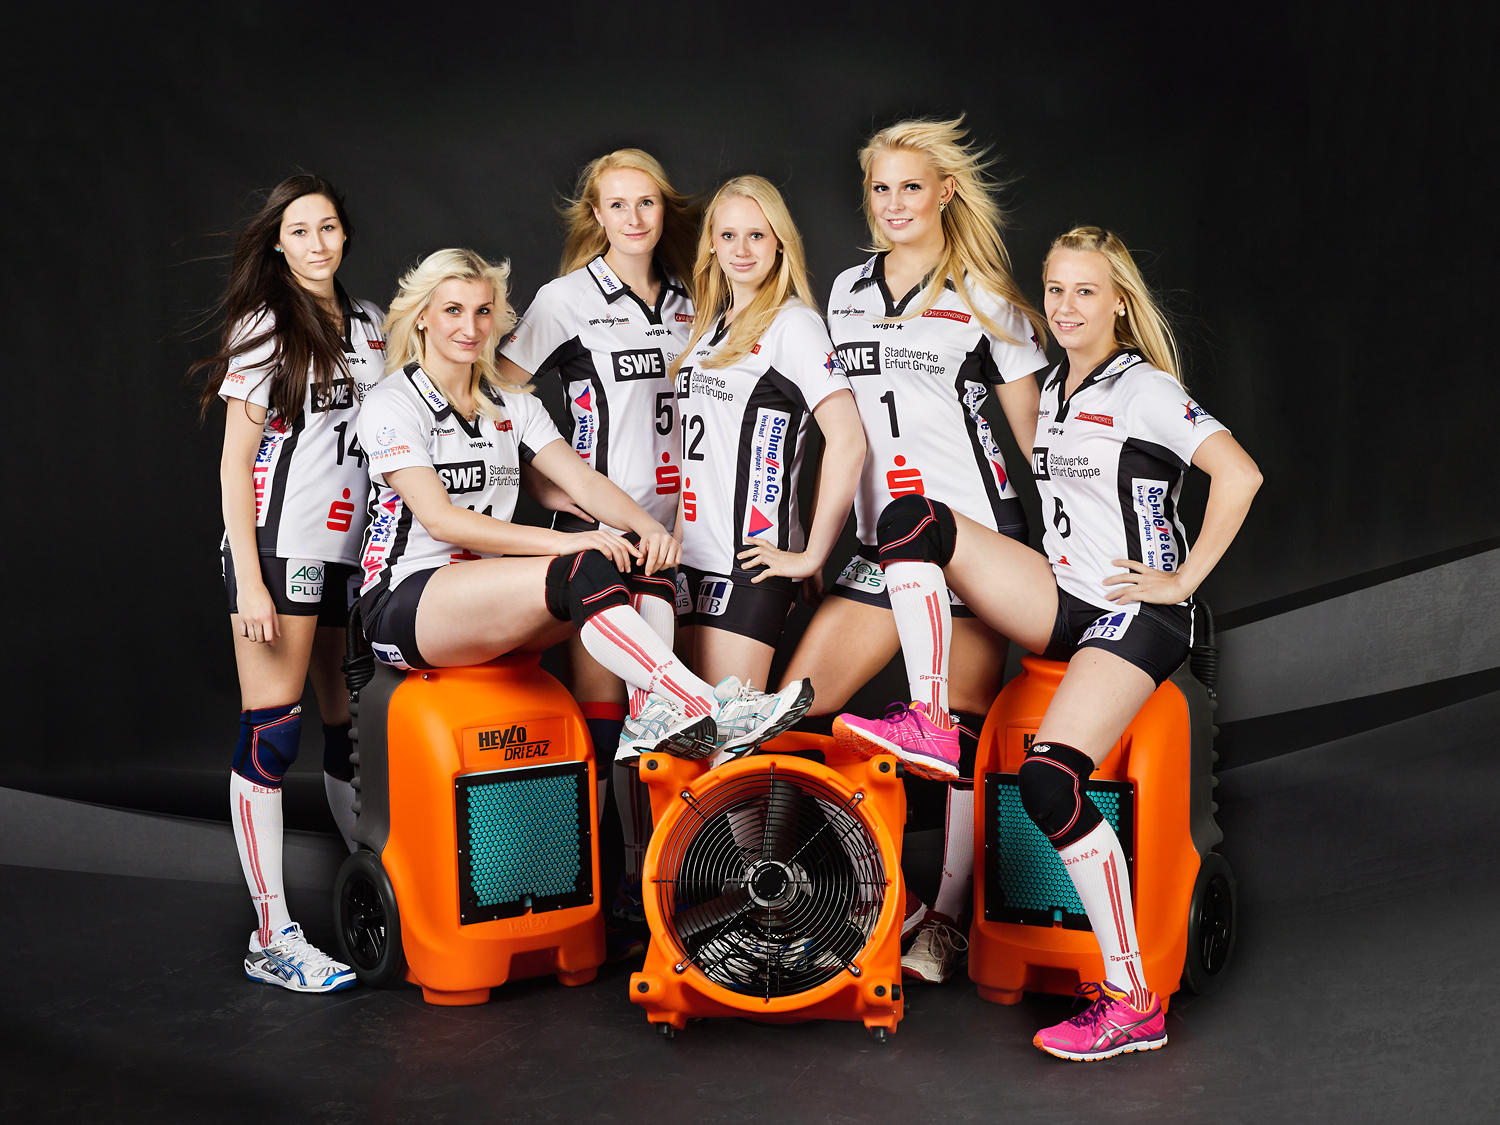 Swe Volley Team